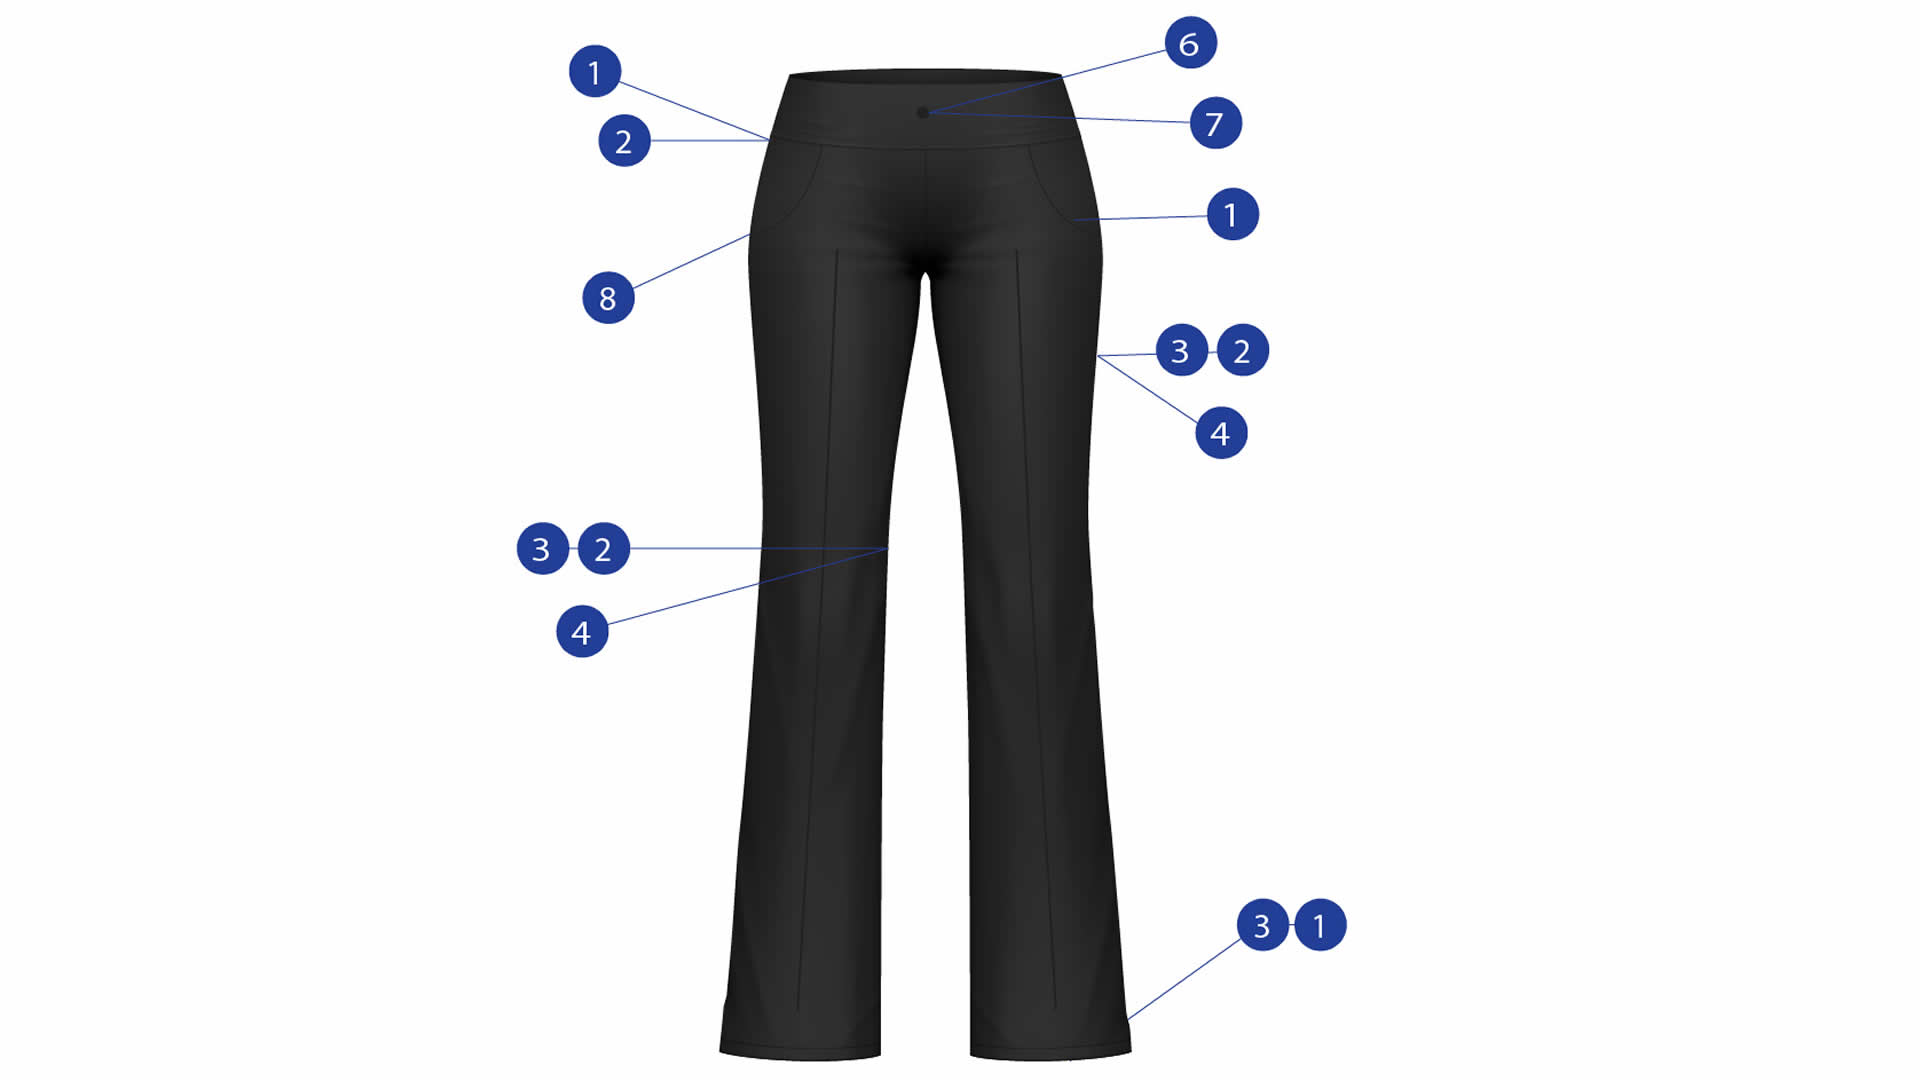 Ladieswear Trousers diagram